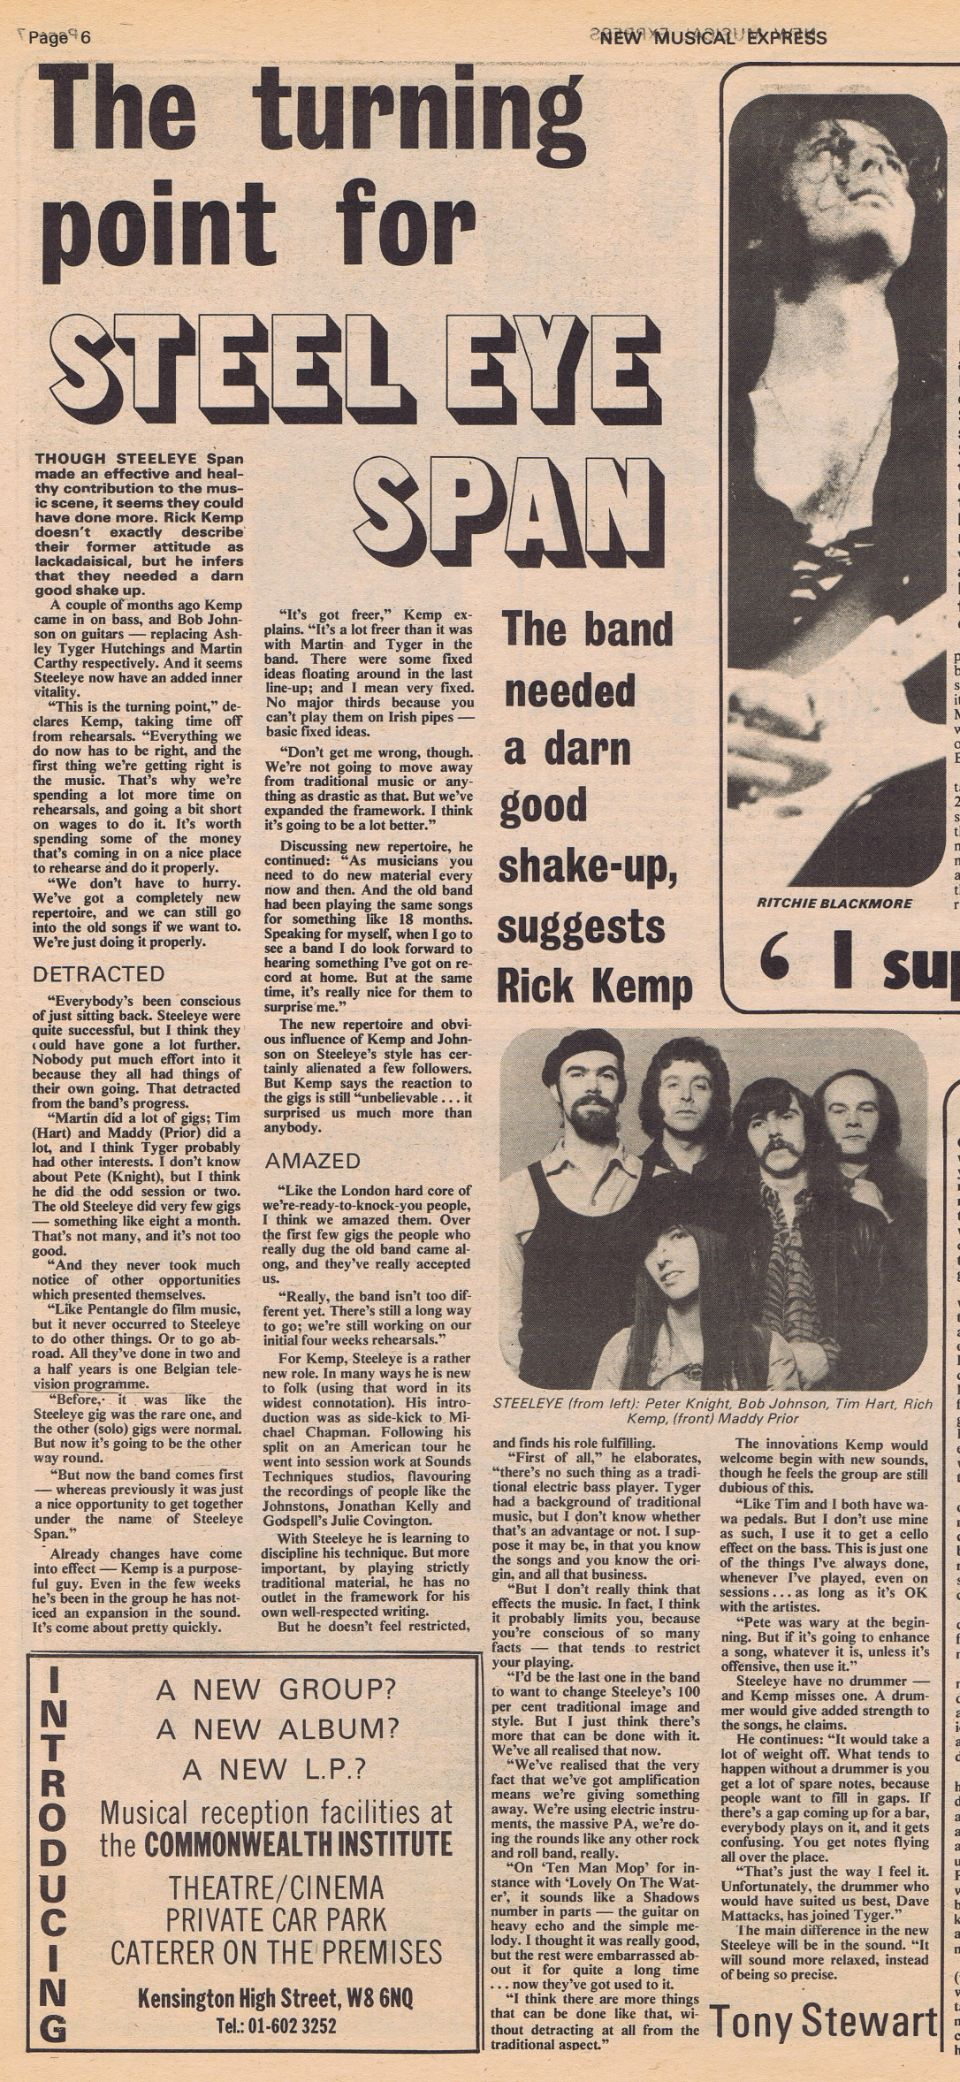 steeleye span article